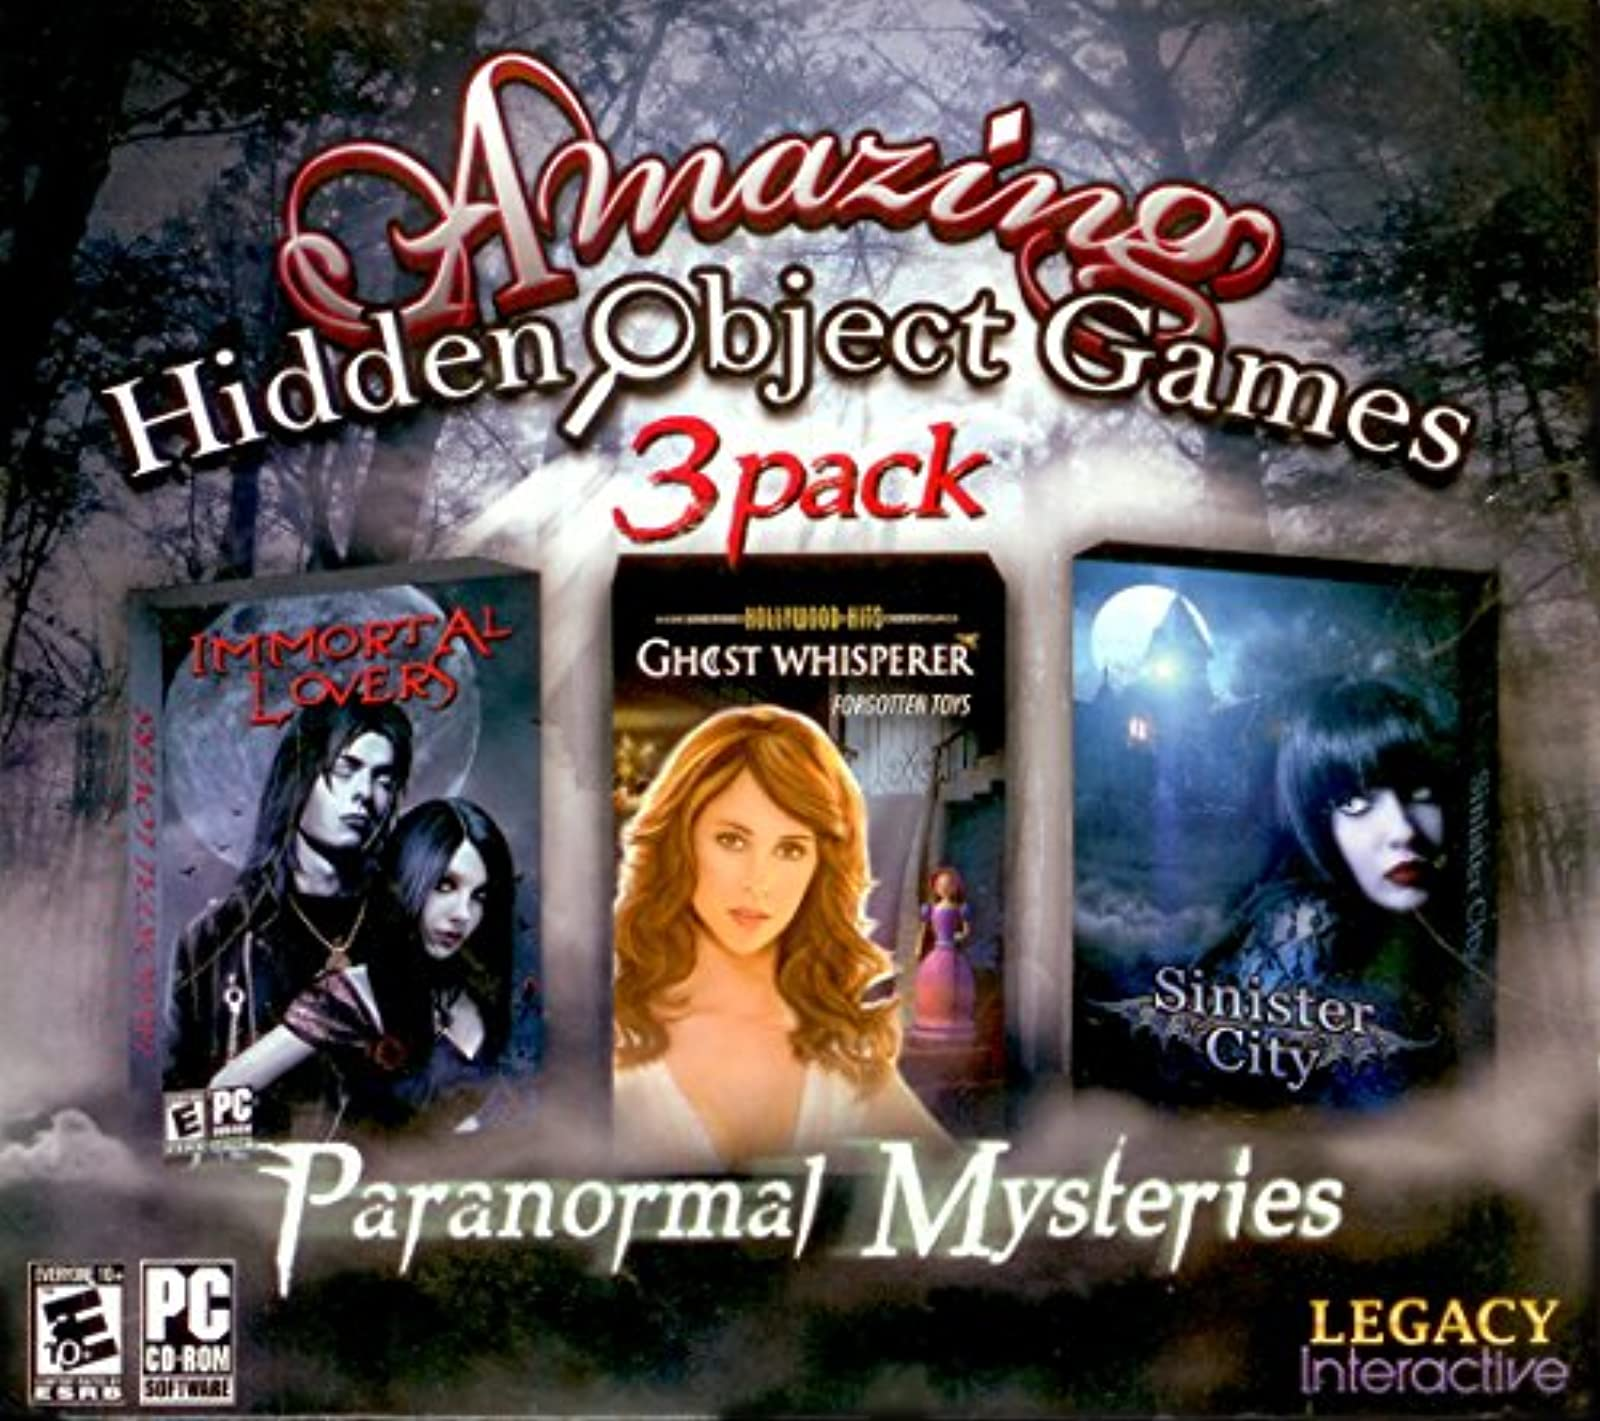 Amazing Hidden Object Games 3 Pack Paranormal Mysteries Immortal Lovers Ghost Wh